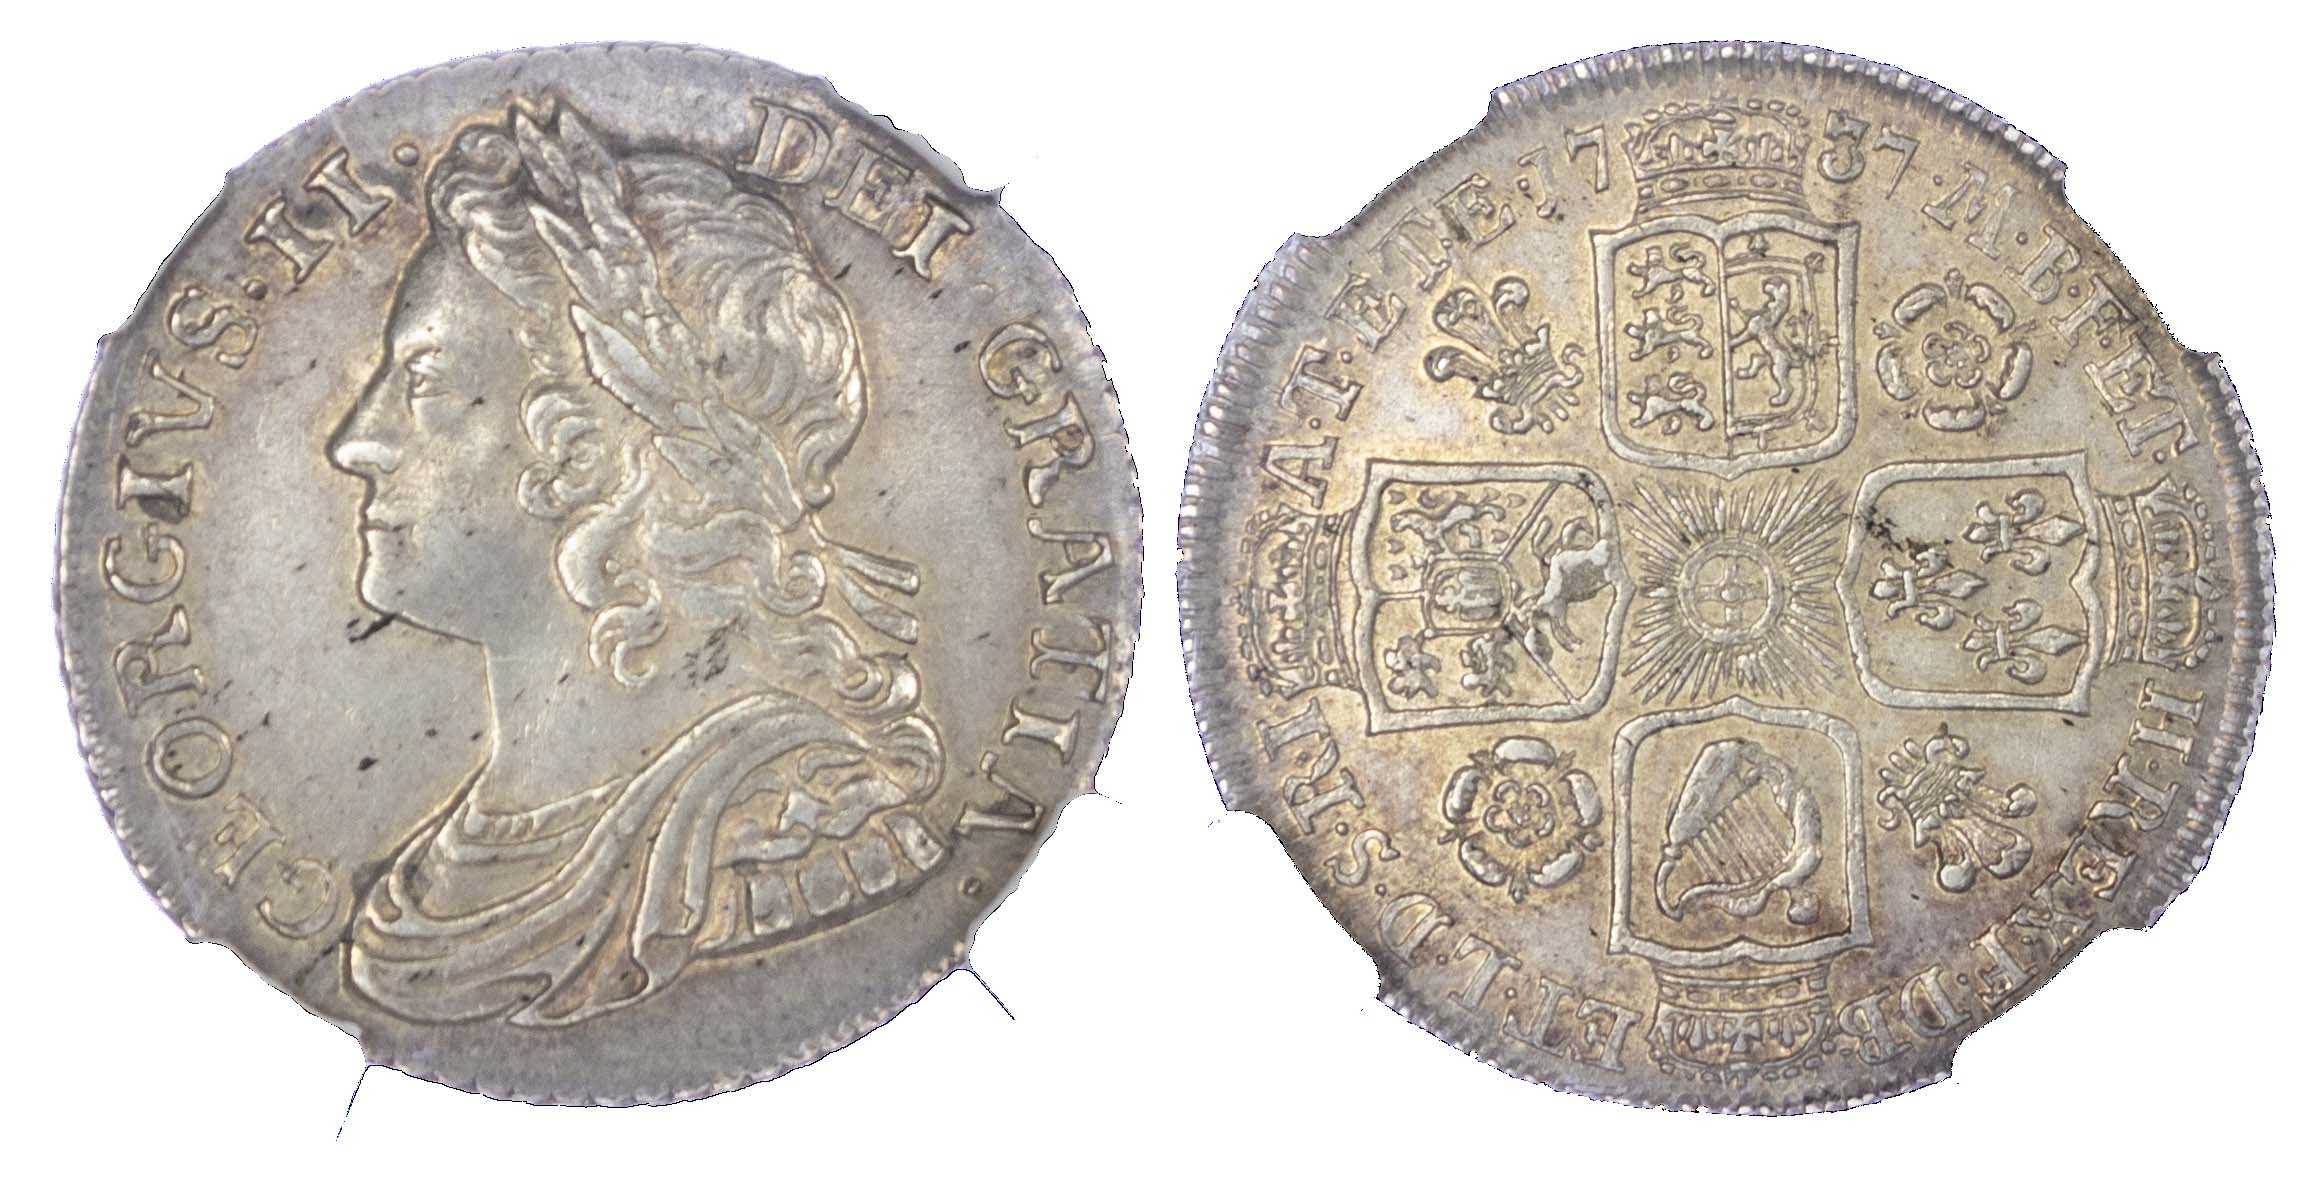 George II (1727-60), Shilling, 1737, Roses and Plumes type